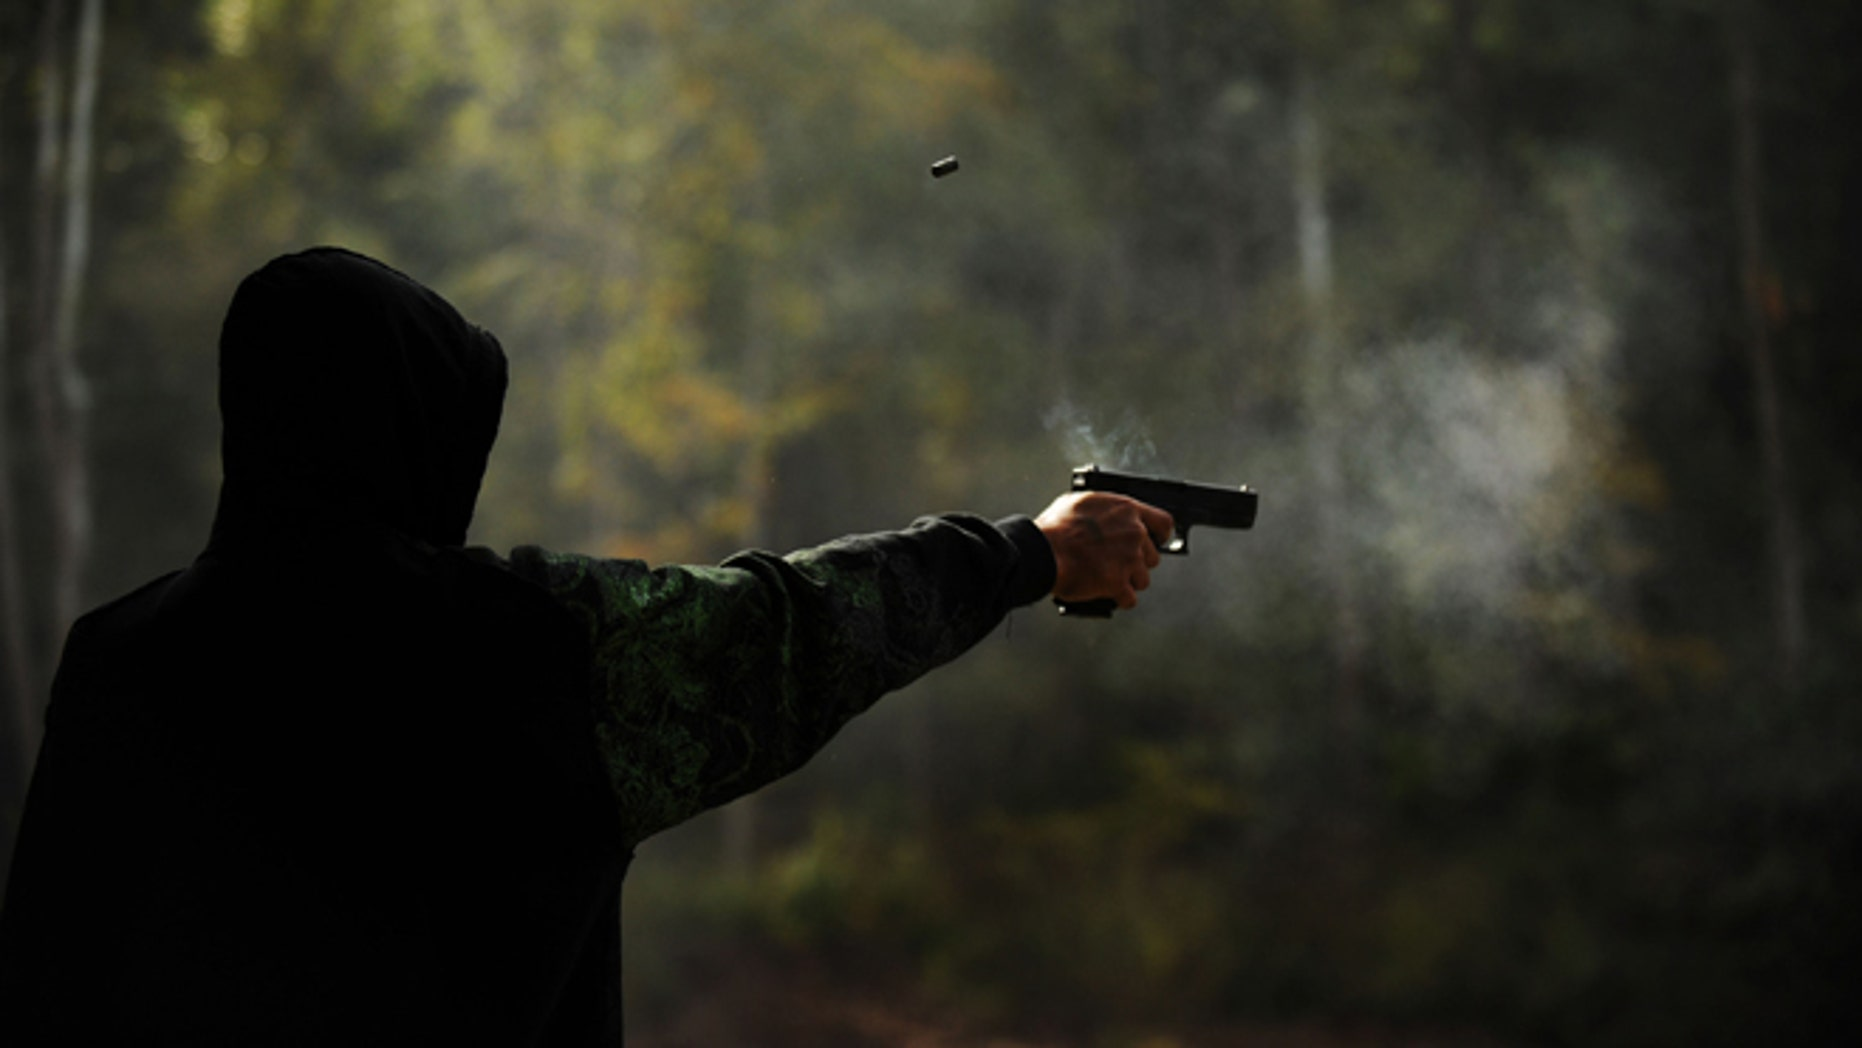 WEST POINT, KY - OCTOBER 10:  Alex Soballe, 17, of Chicago, Ill. shoots a 9mm handgun at the Knob Creek Machine Gun Shoot on October 10, 2009 in West Point, Kentucky.  The Supreme Court is currently hearing a portion of last year's Second Amendment case, District of Columbia v. Heller, that found that the amendment protects a person's right that the federal government can not abridge. (Photo by Matt McClain/Getty Images)